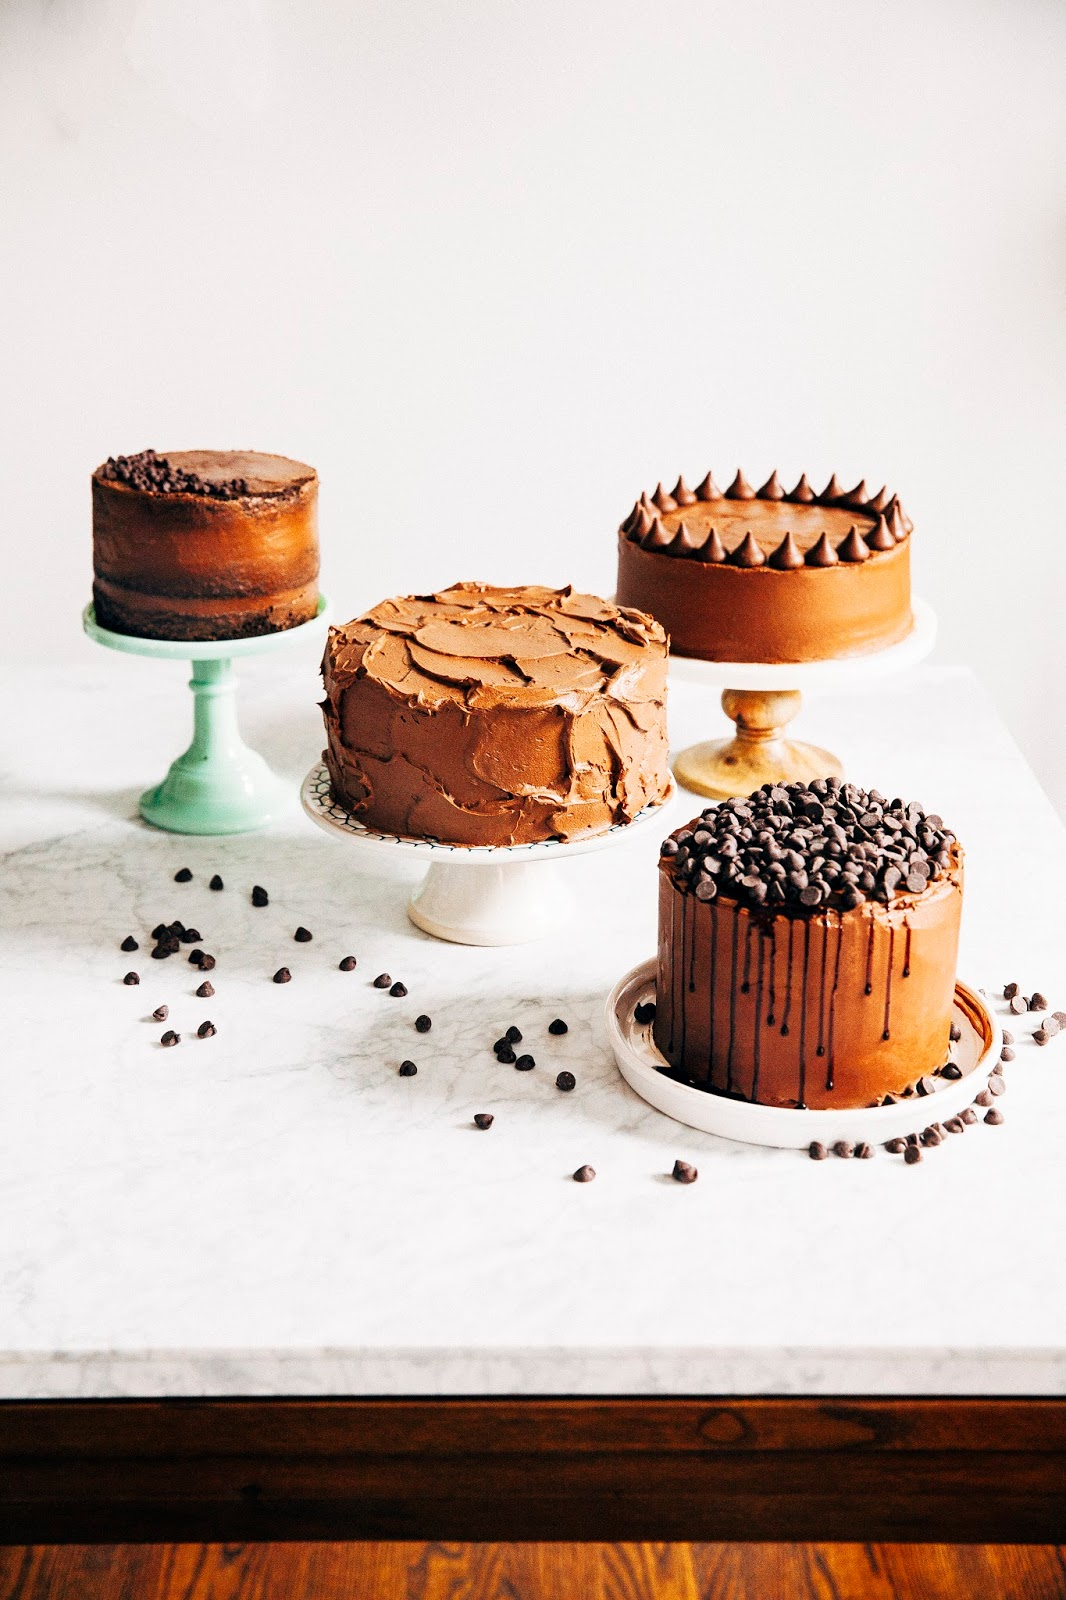 I Ve Partnered With The Hershey Company To Bring You A Quick Guide To Decorating A Cake Beautifully With Just A Handful Of Tools And Ingredients